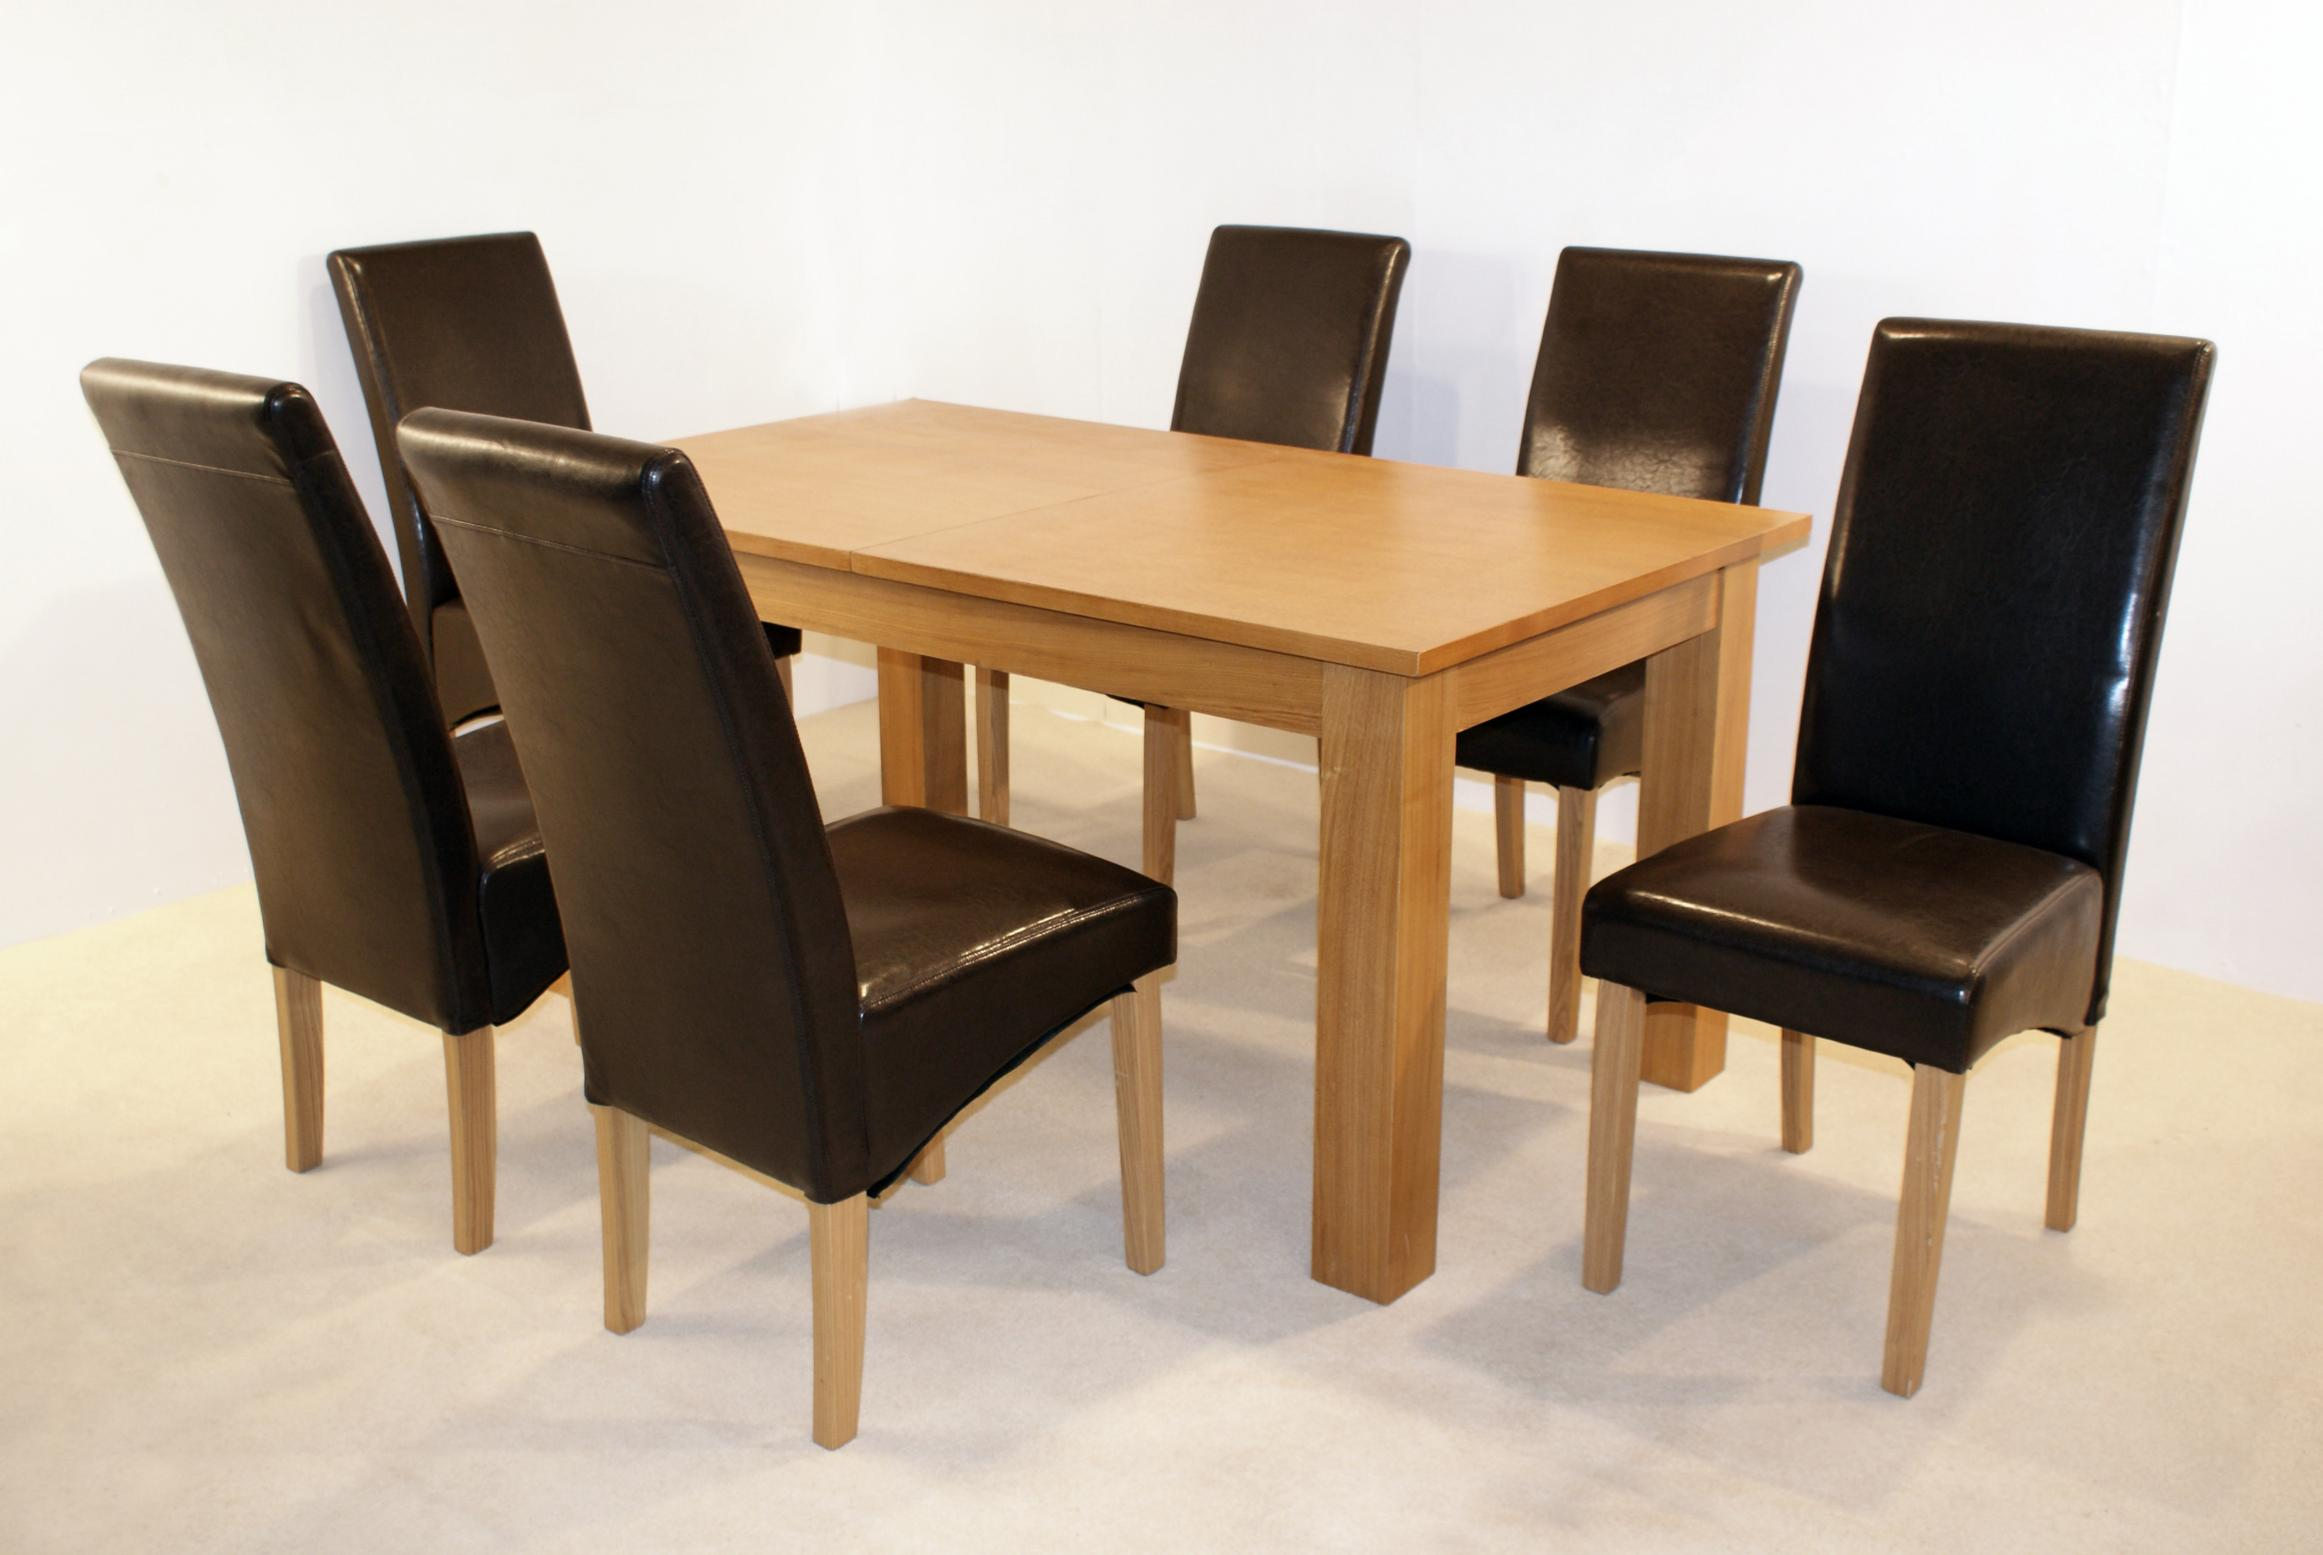 Sherington extending table 6 chairs tbs discount furniture - Cdiscount table chaise ...